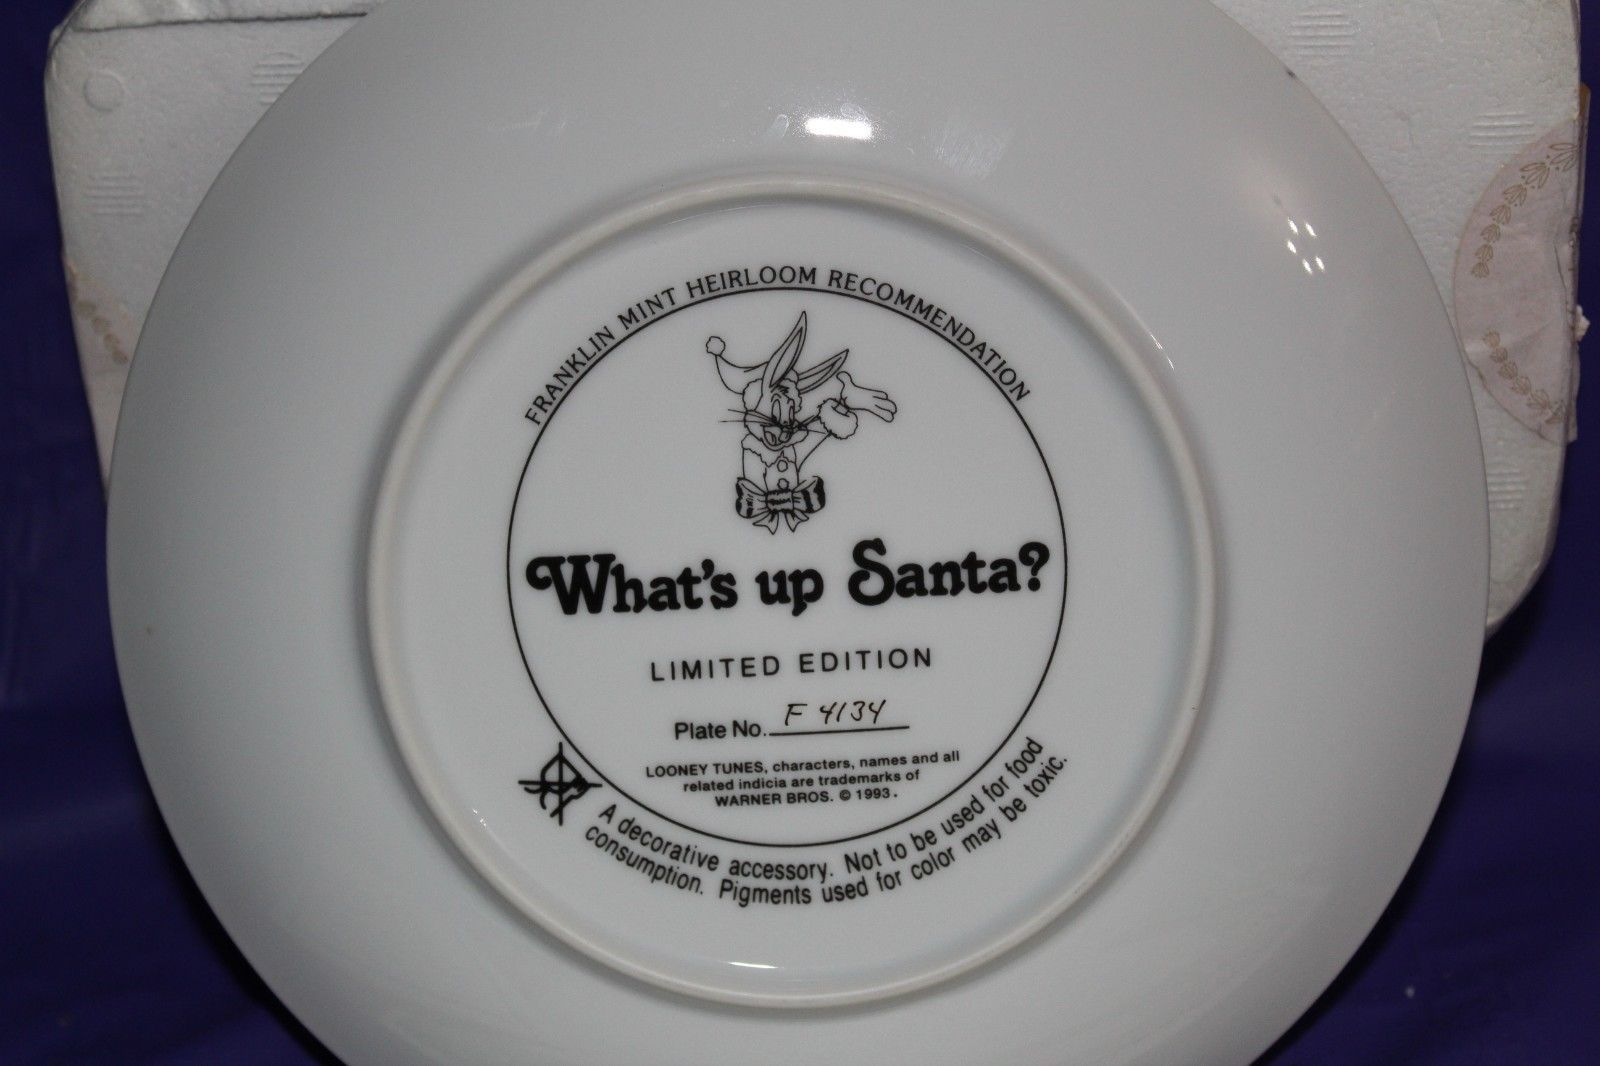 Franklin Mint Looney Tunes What's Up Santa? Warner Bros. Collector Plate